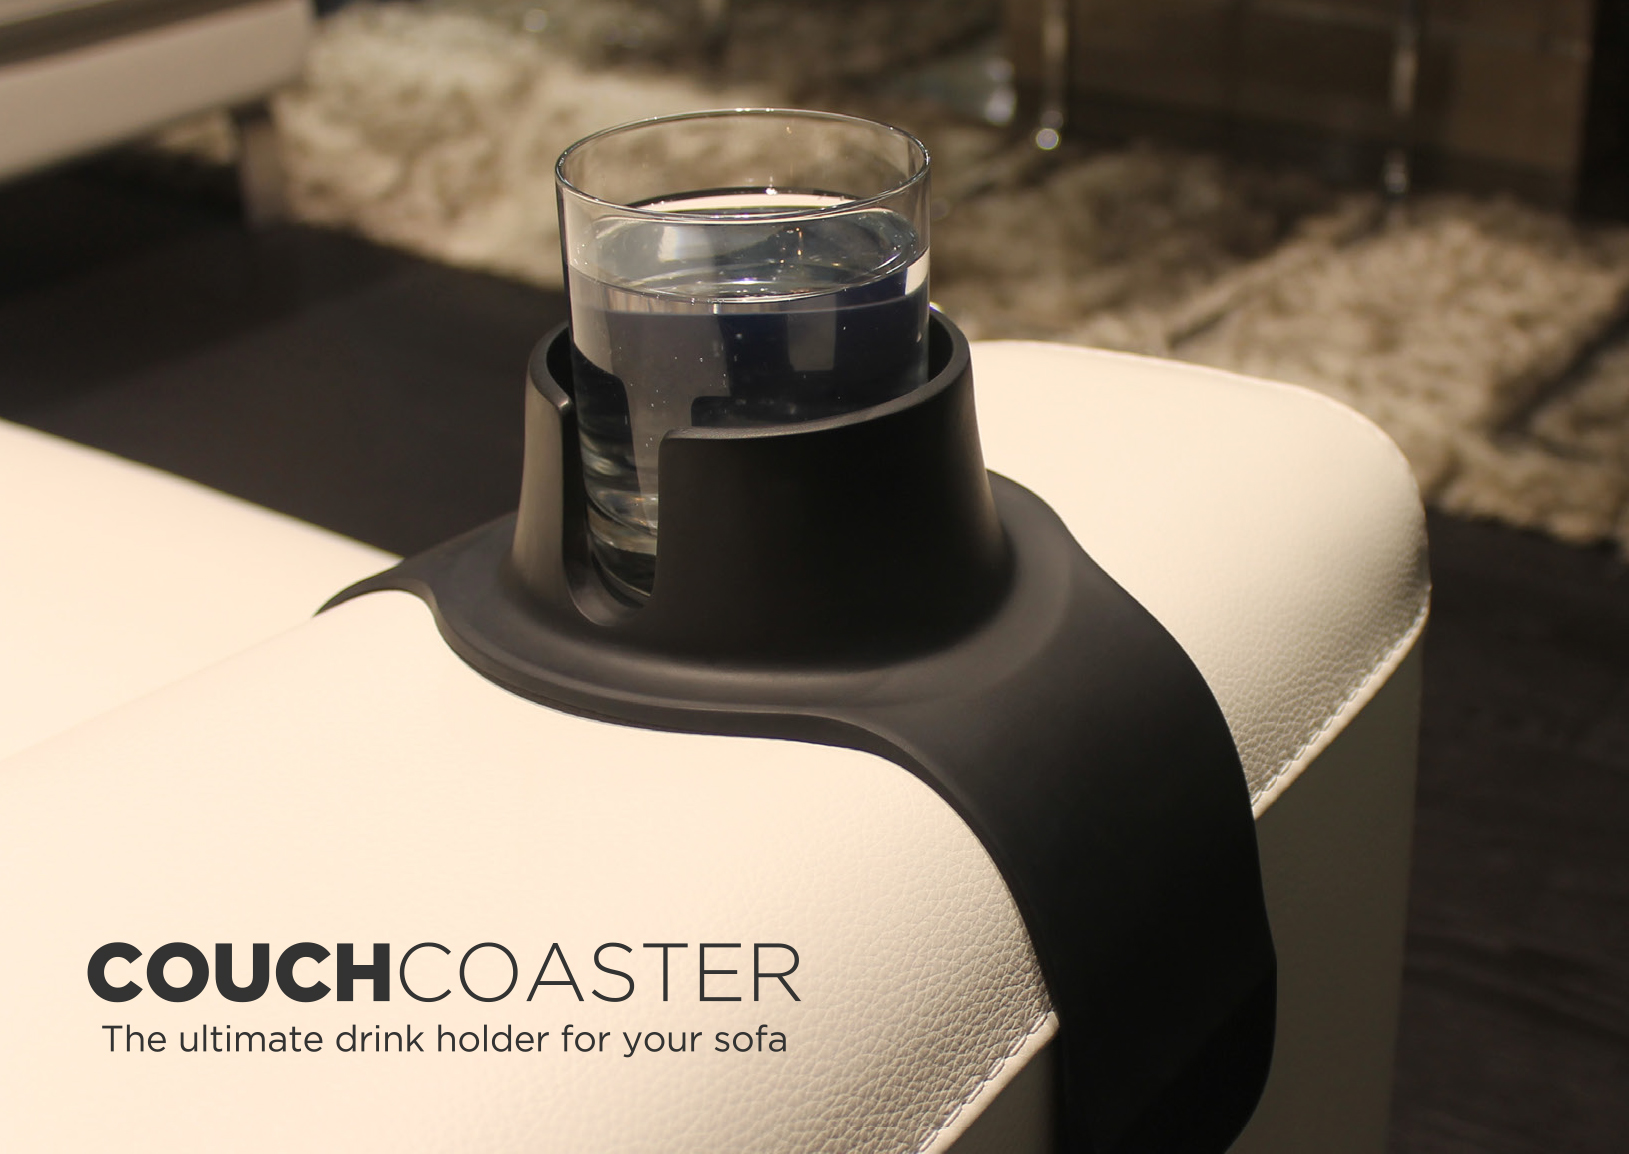 CouchCoaster The ultimate drink holder for your sofa : c7b135829008911b1840b9b8e8bb6949ea0095 from couchcoaster.com size 1629 x 1154 jpeg 684kB